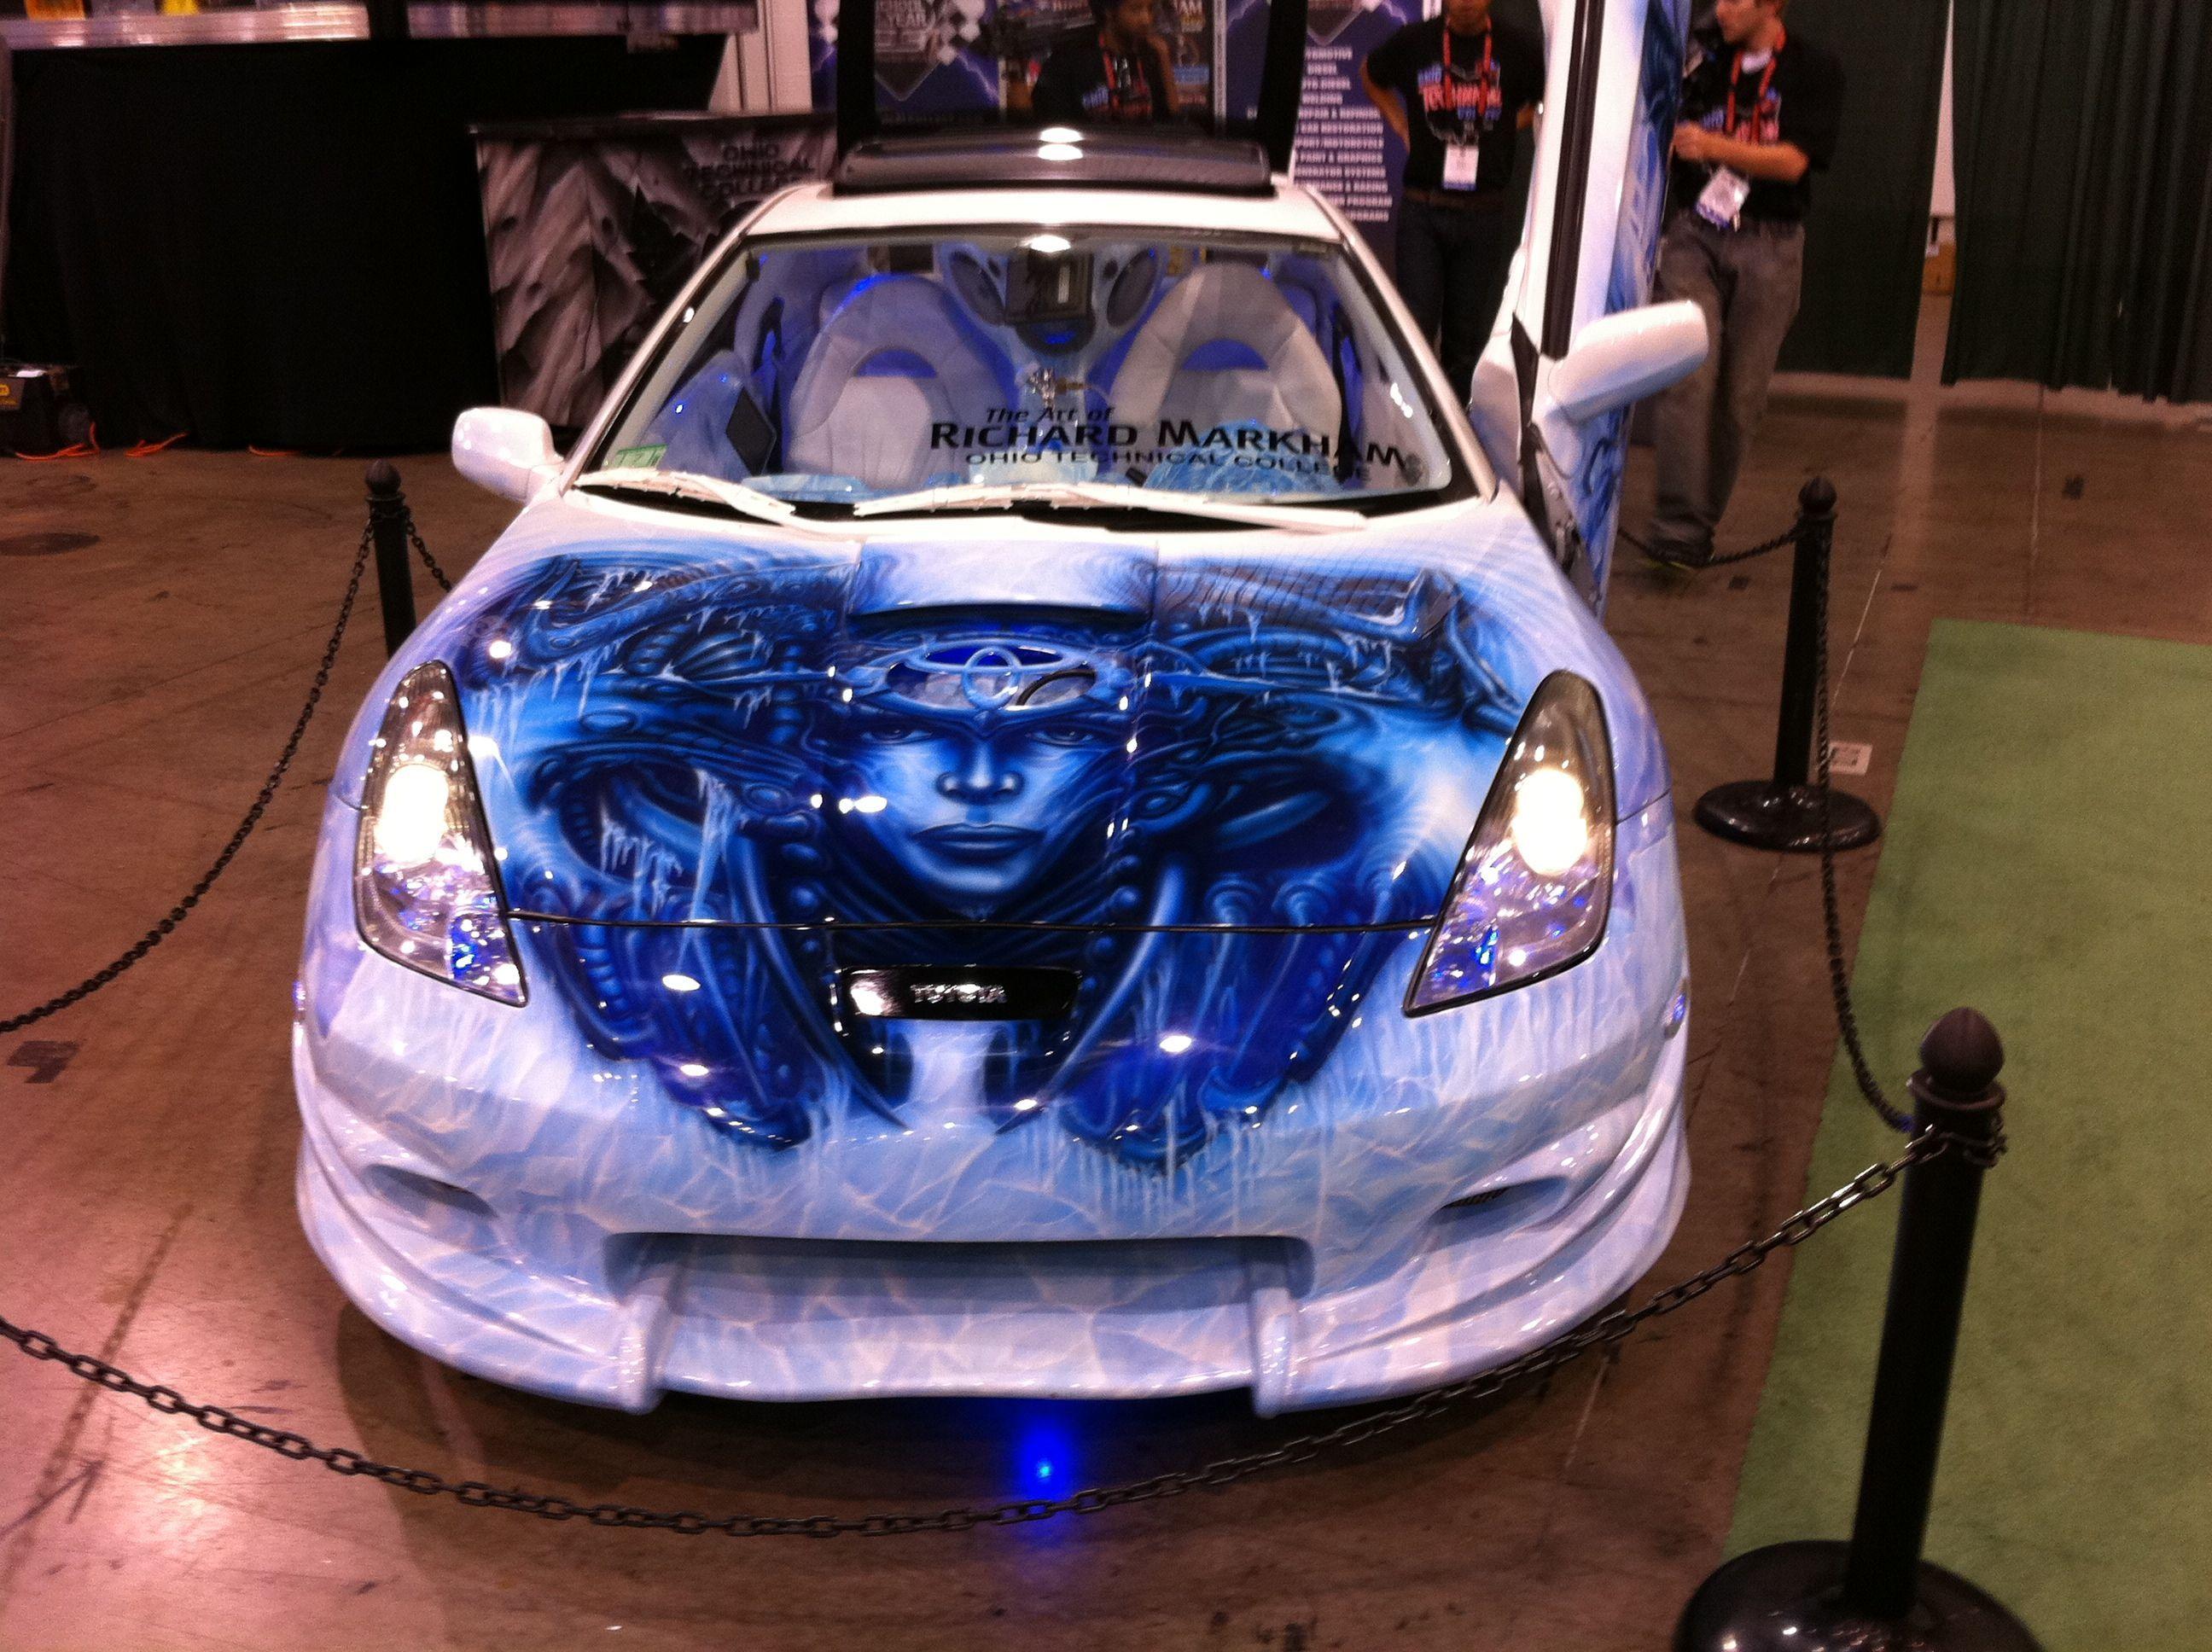 Extraordinary Awesome Airbrush Art - Myhomeimprovement